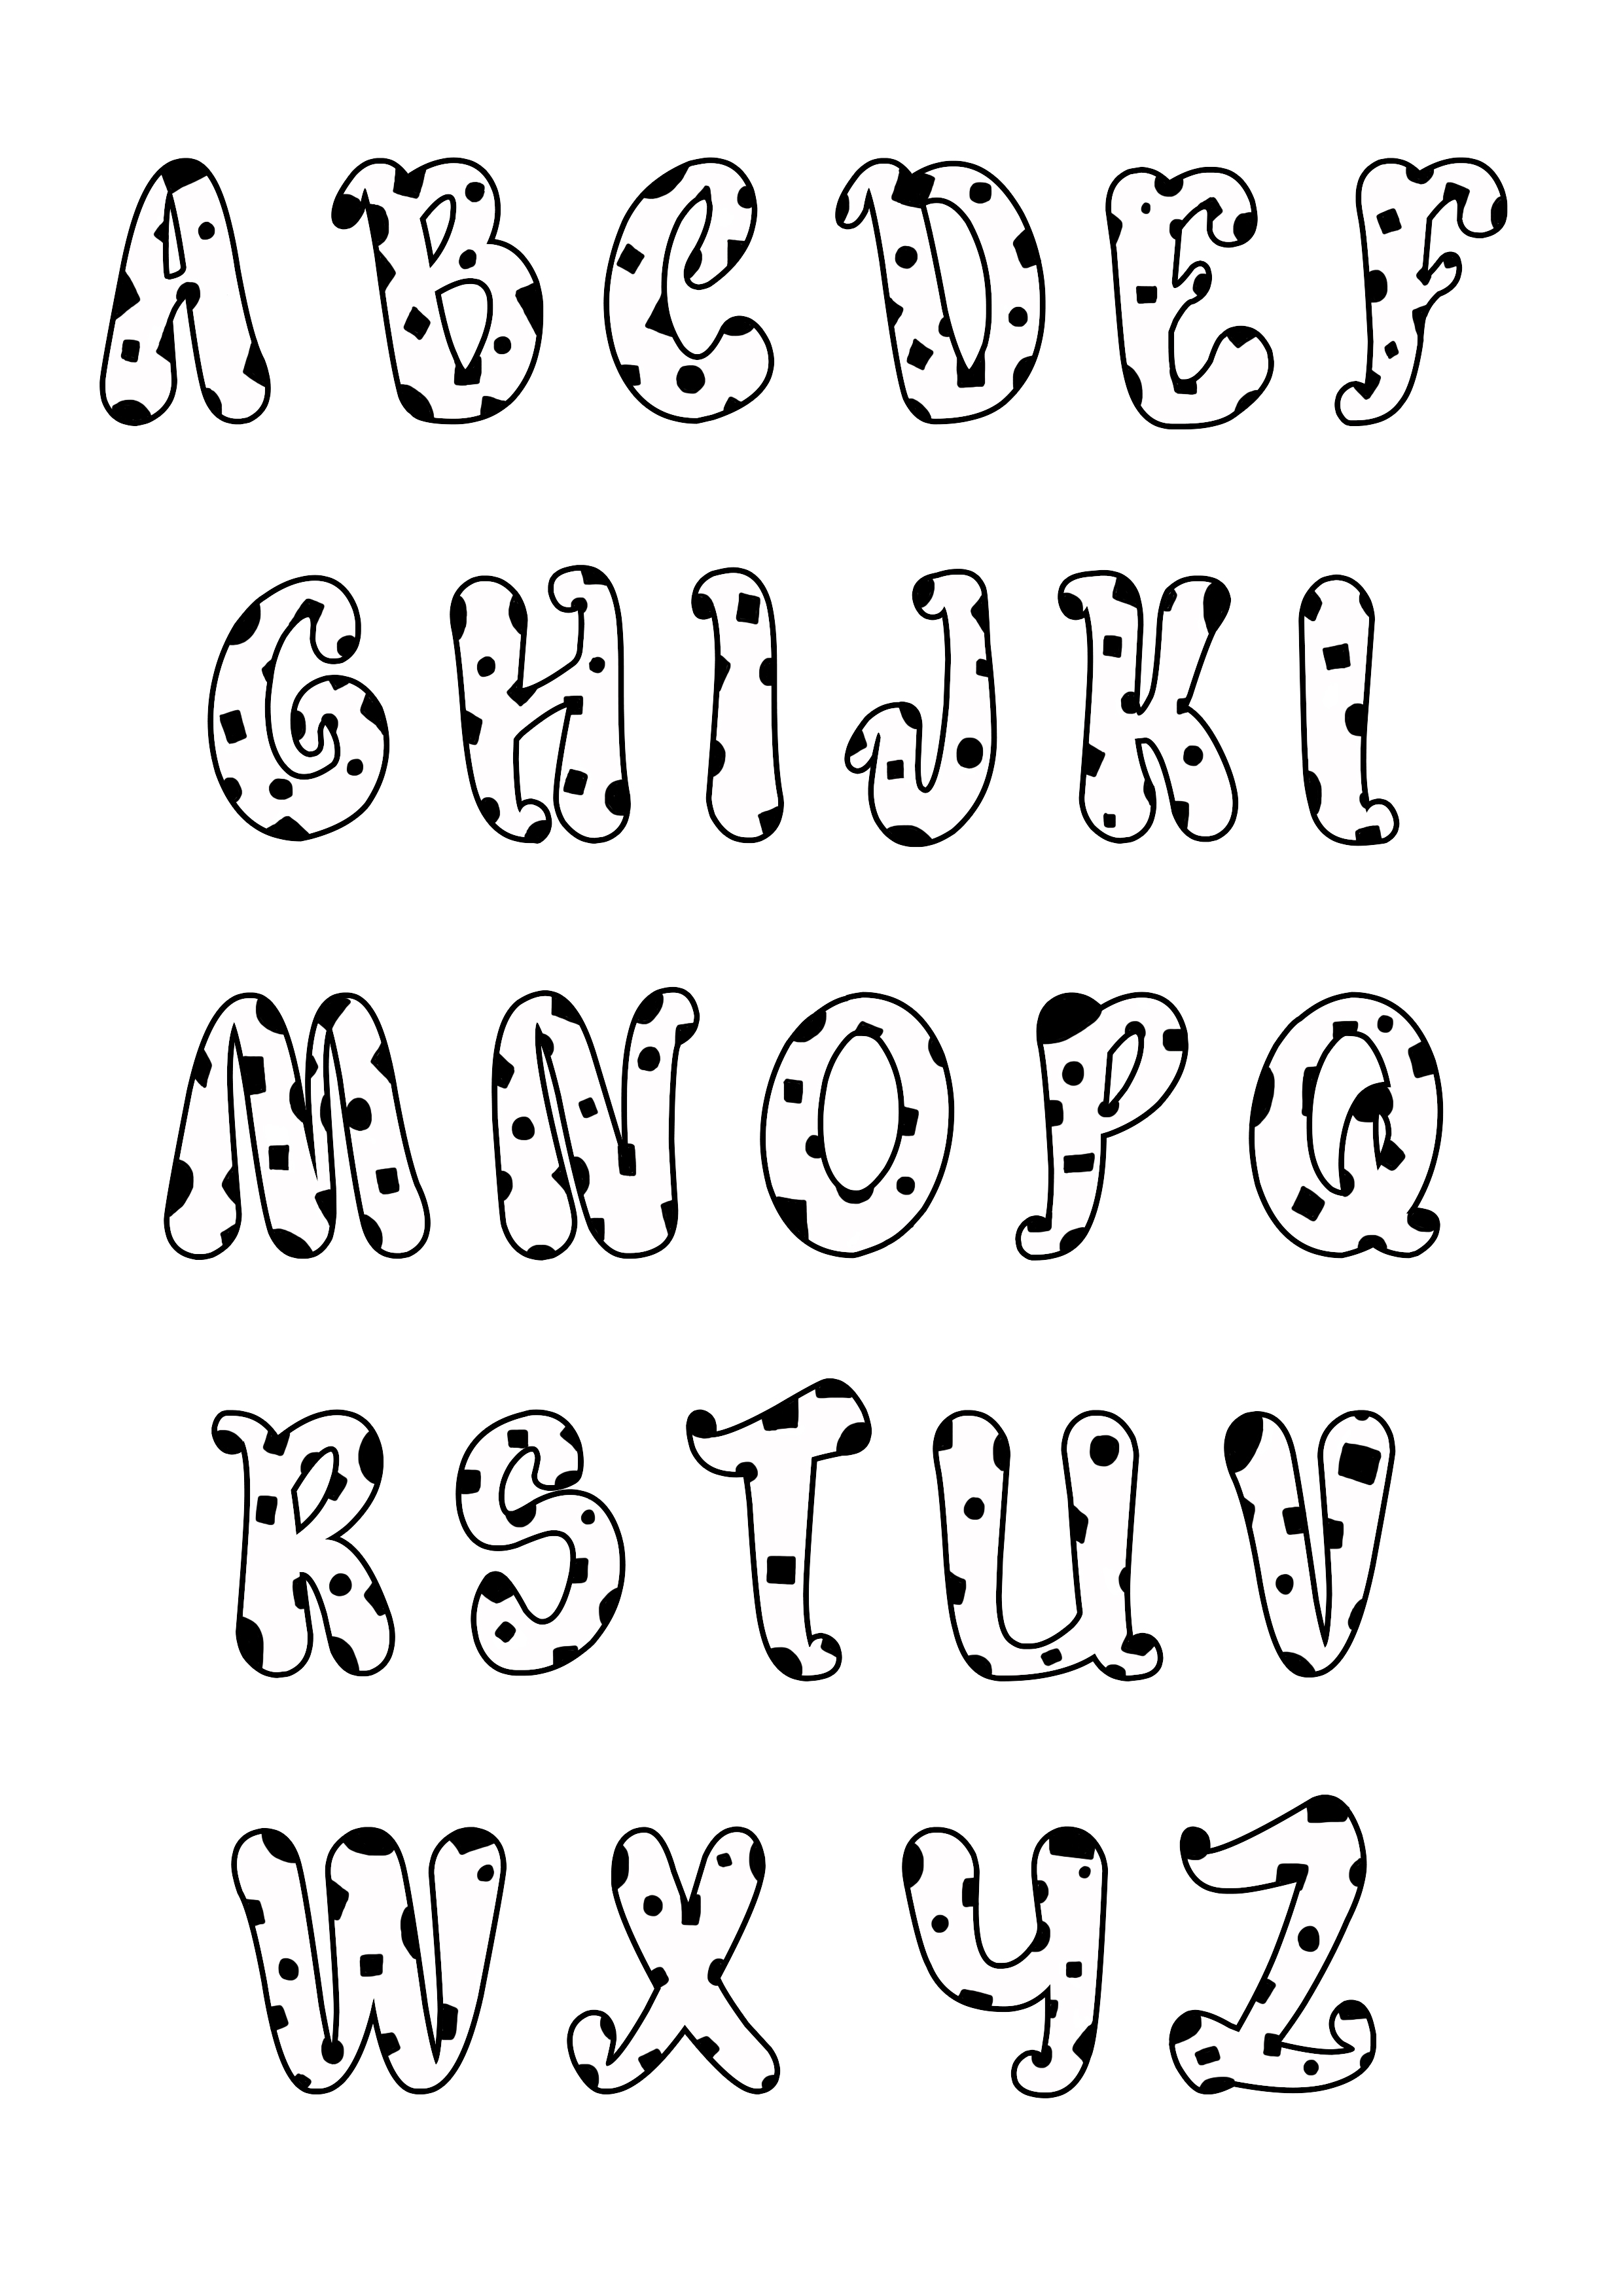 Simple Alphabet Coloring Page To Print And Color For Free